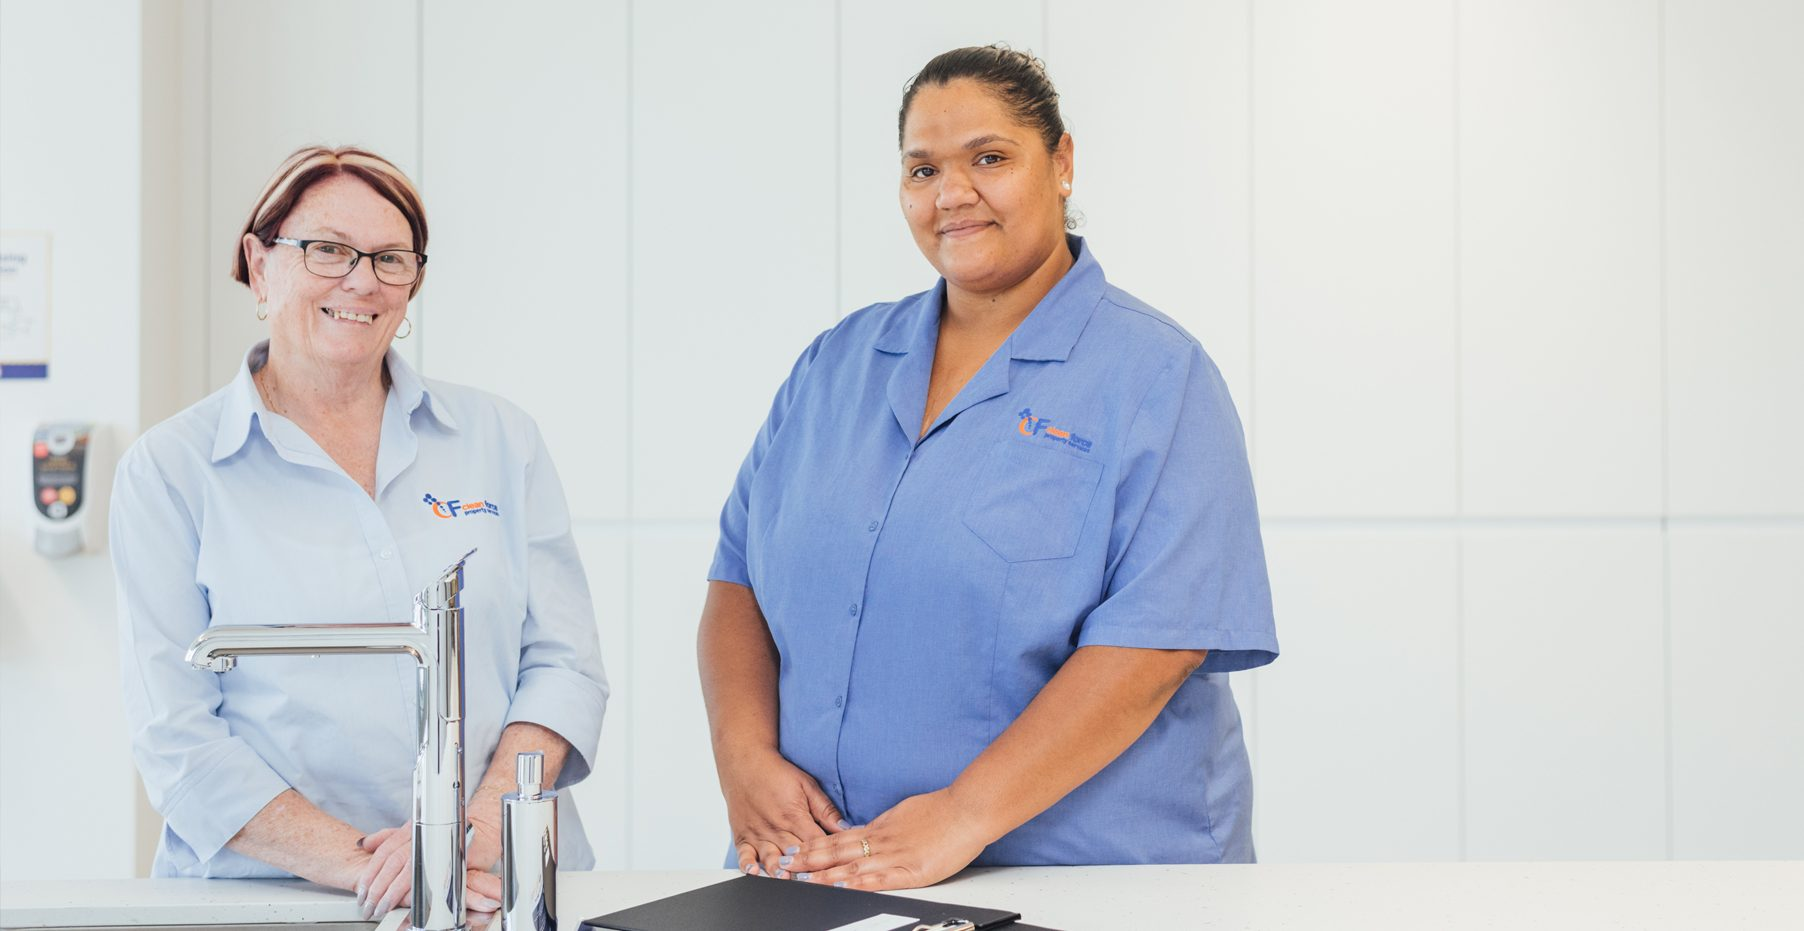 Rhonda and Nakoa stand in their Clean Force Uniforms in a meeting room.